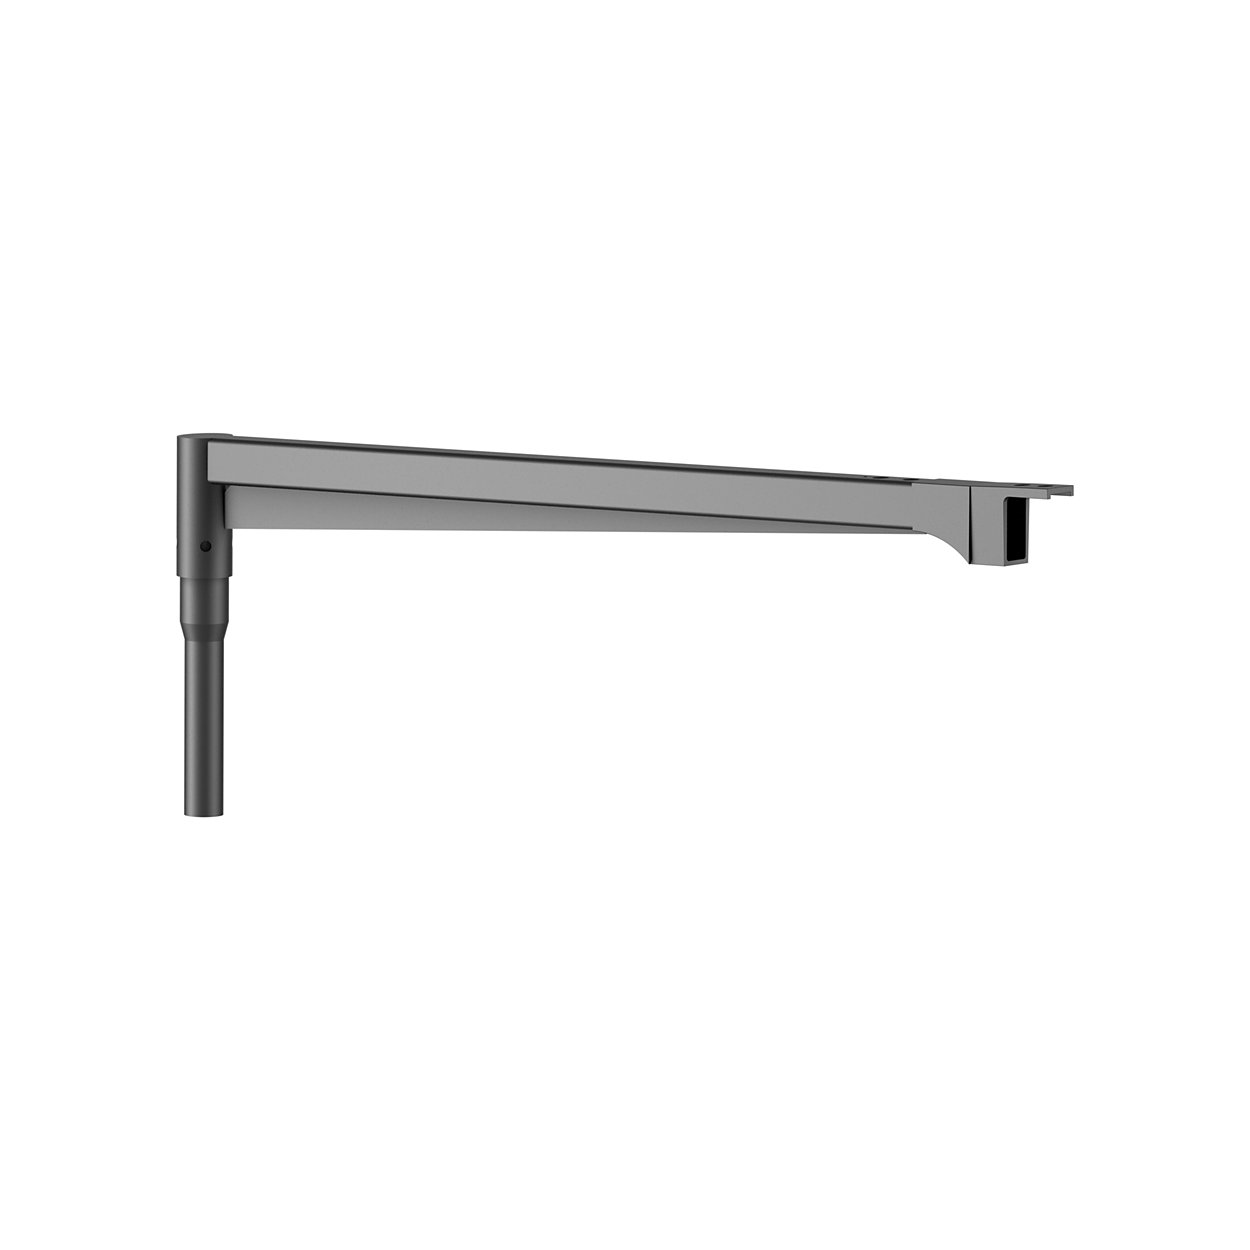 Ocean poles and brackets – Elegance and fluidity